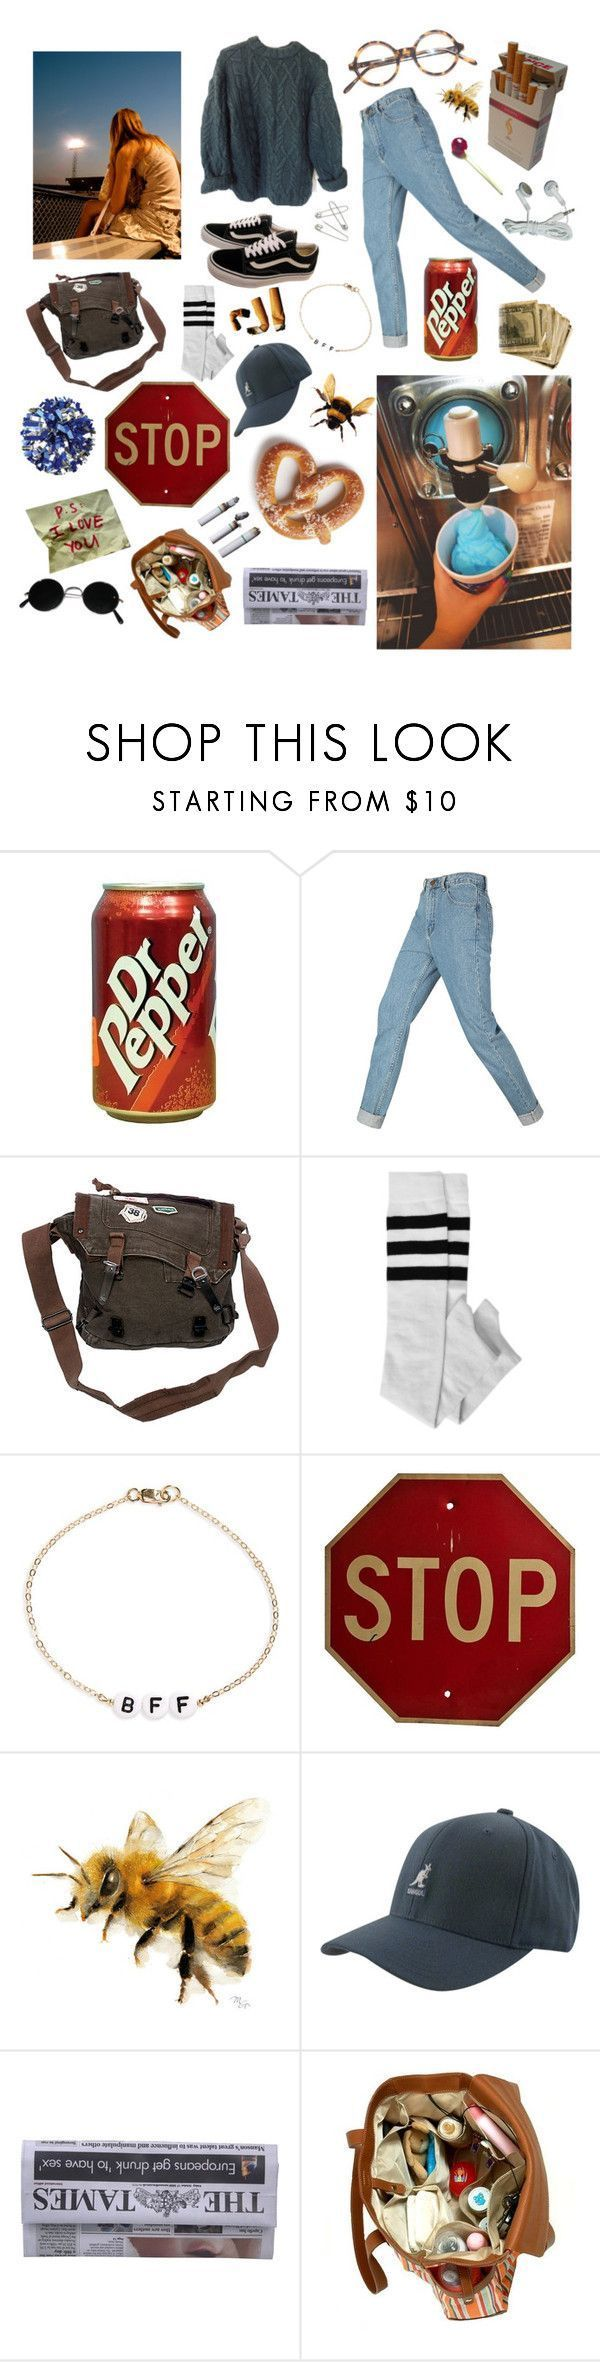 friday night lights by peachplanets  liked on Polyvore featuring Nasty Gal #fridaynightlights